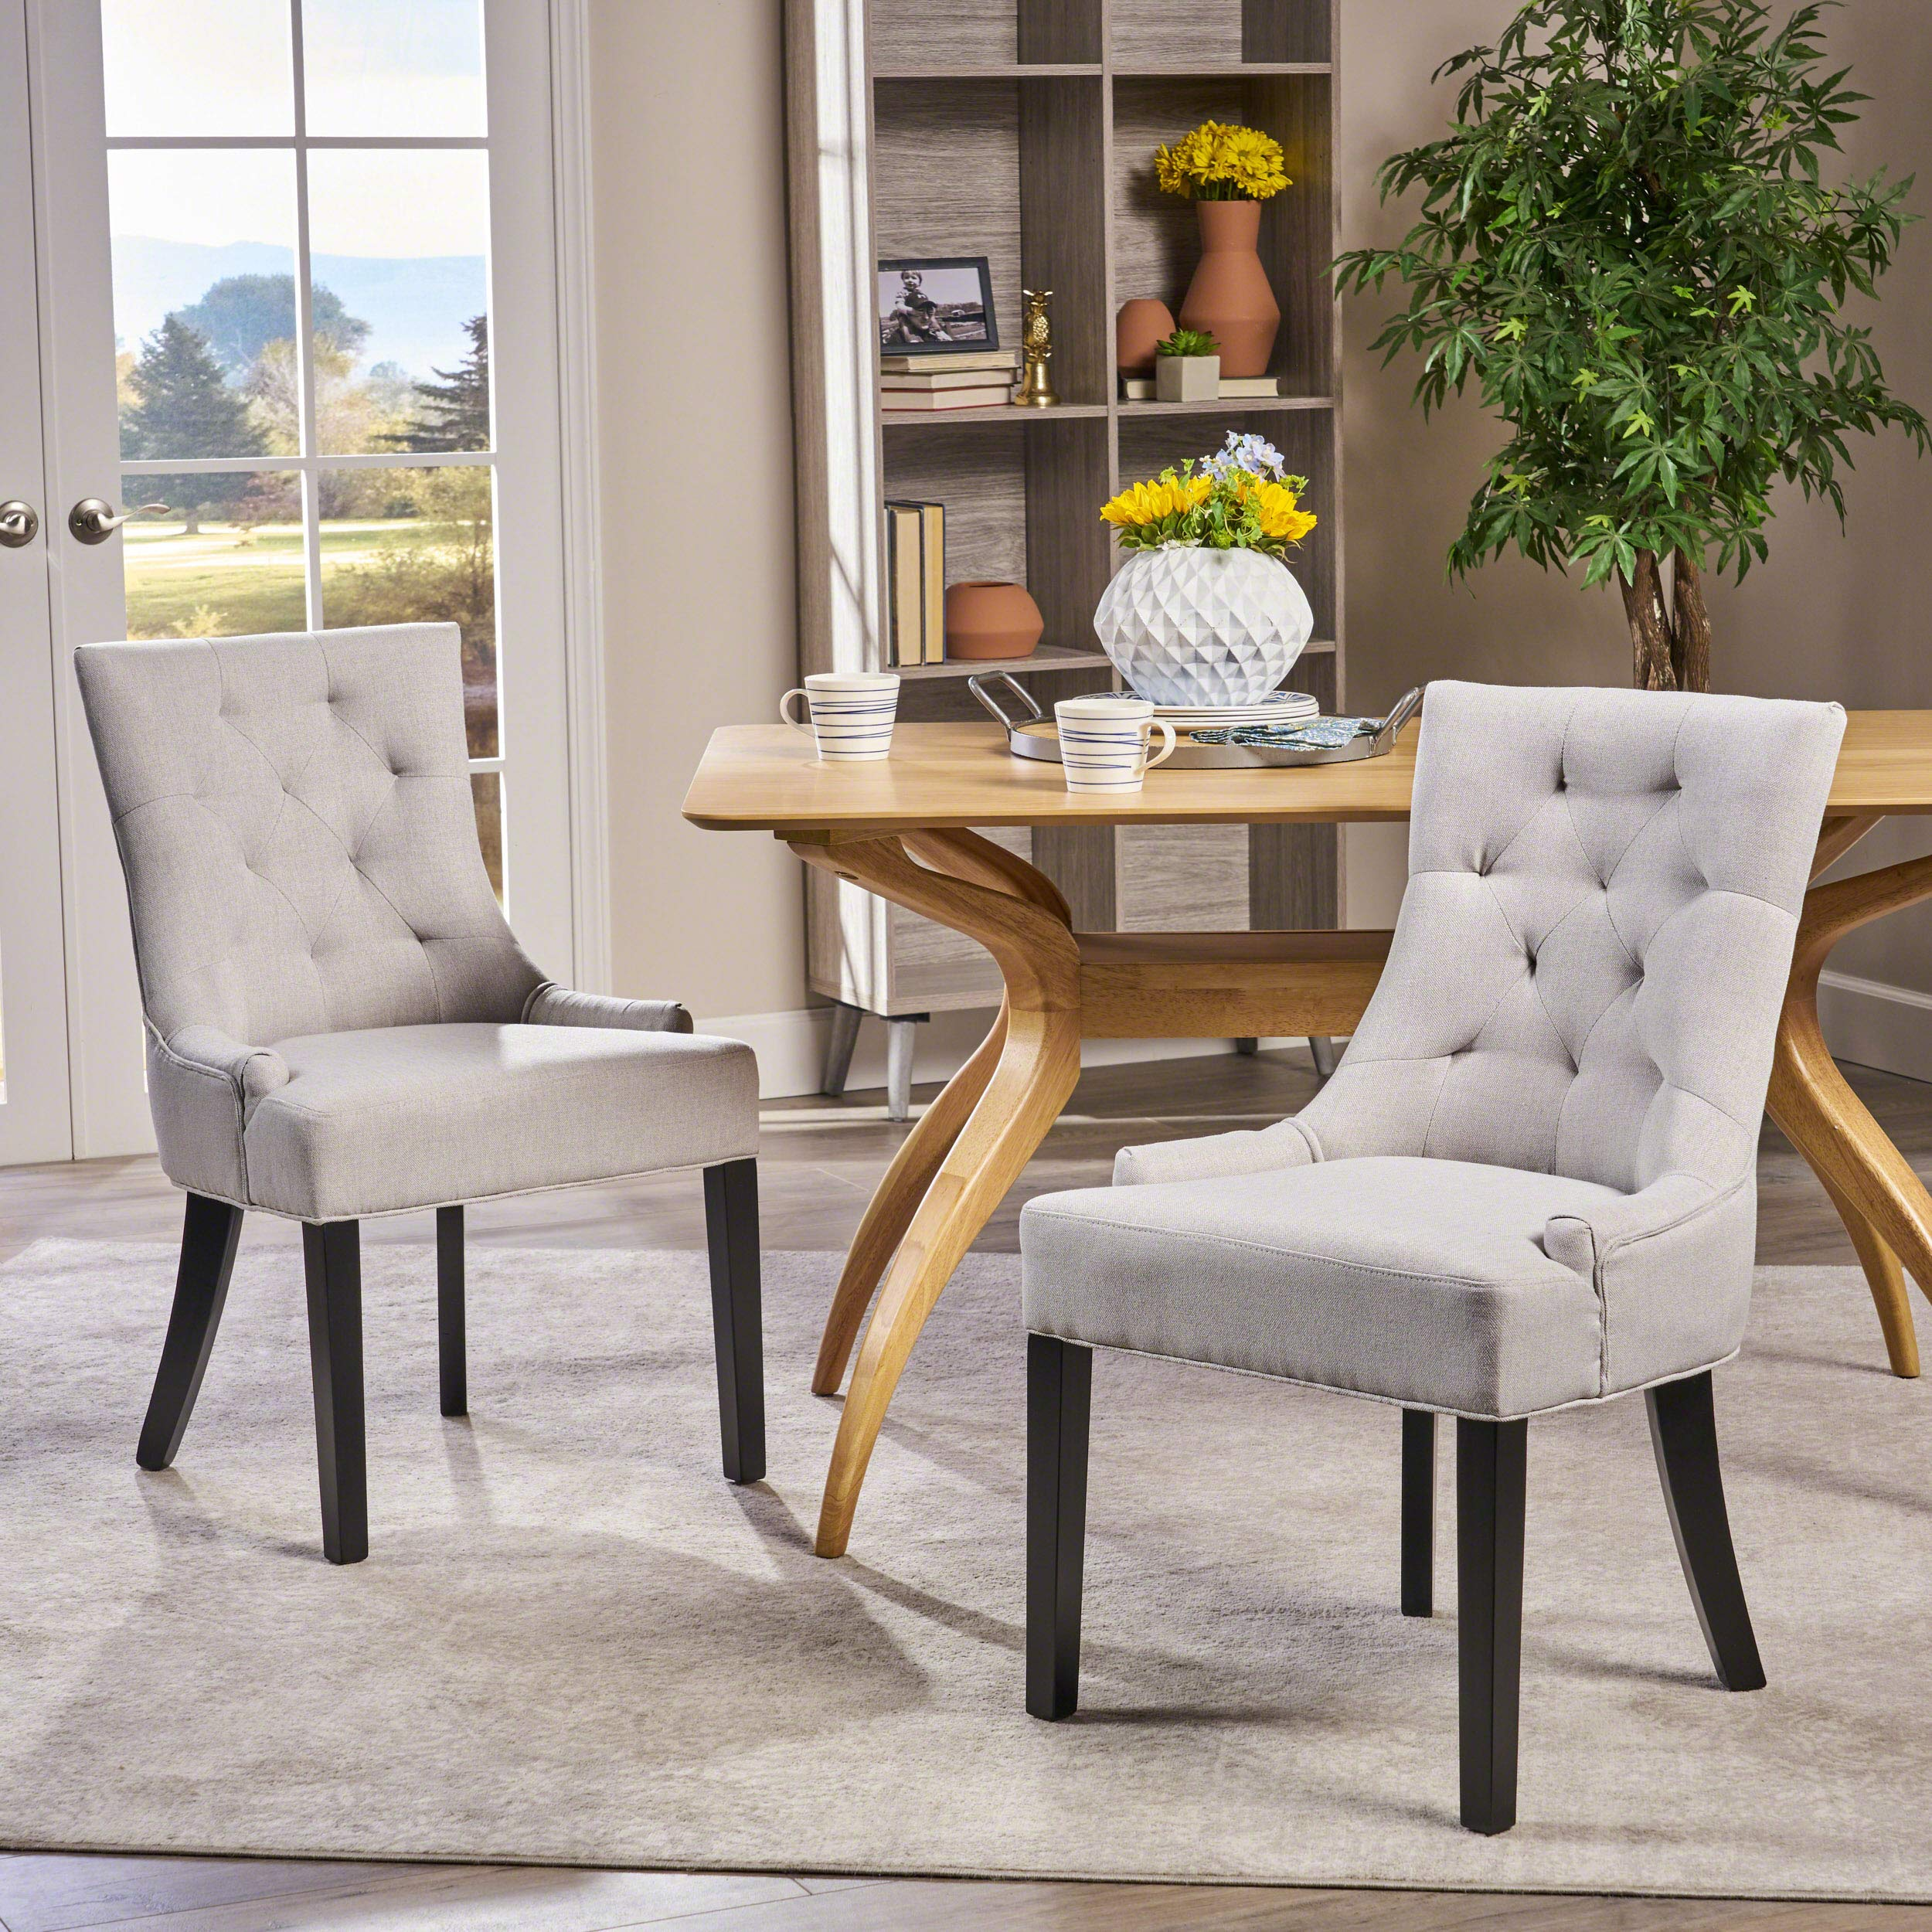 Christopher Knight Home 299538 Hayden Fabric Dining Chairs (Set of 2), Light Gray by Christopher Knight Home